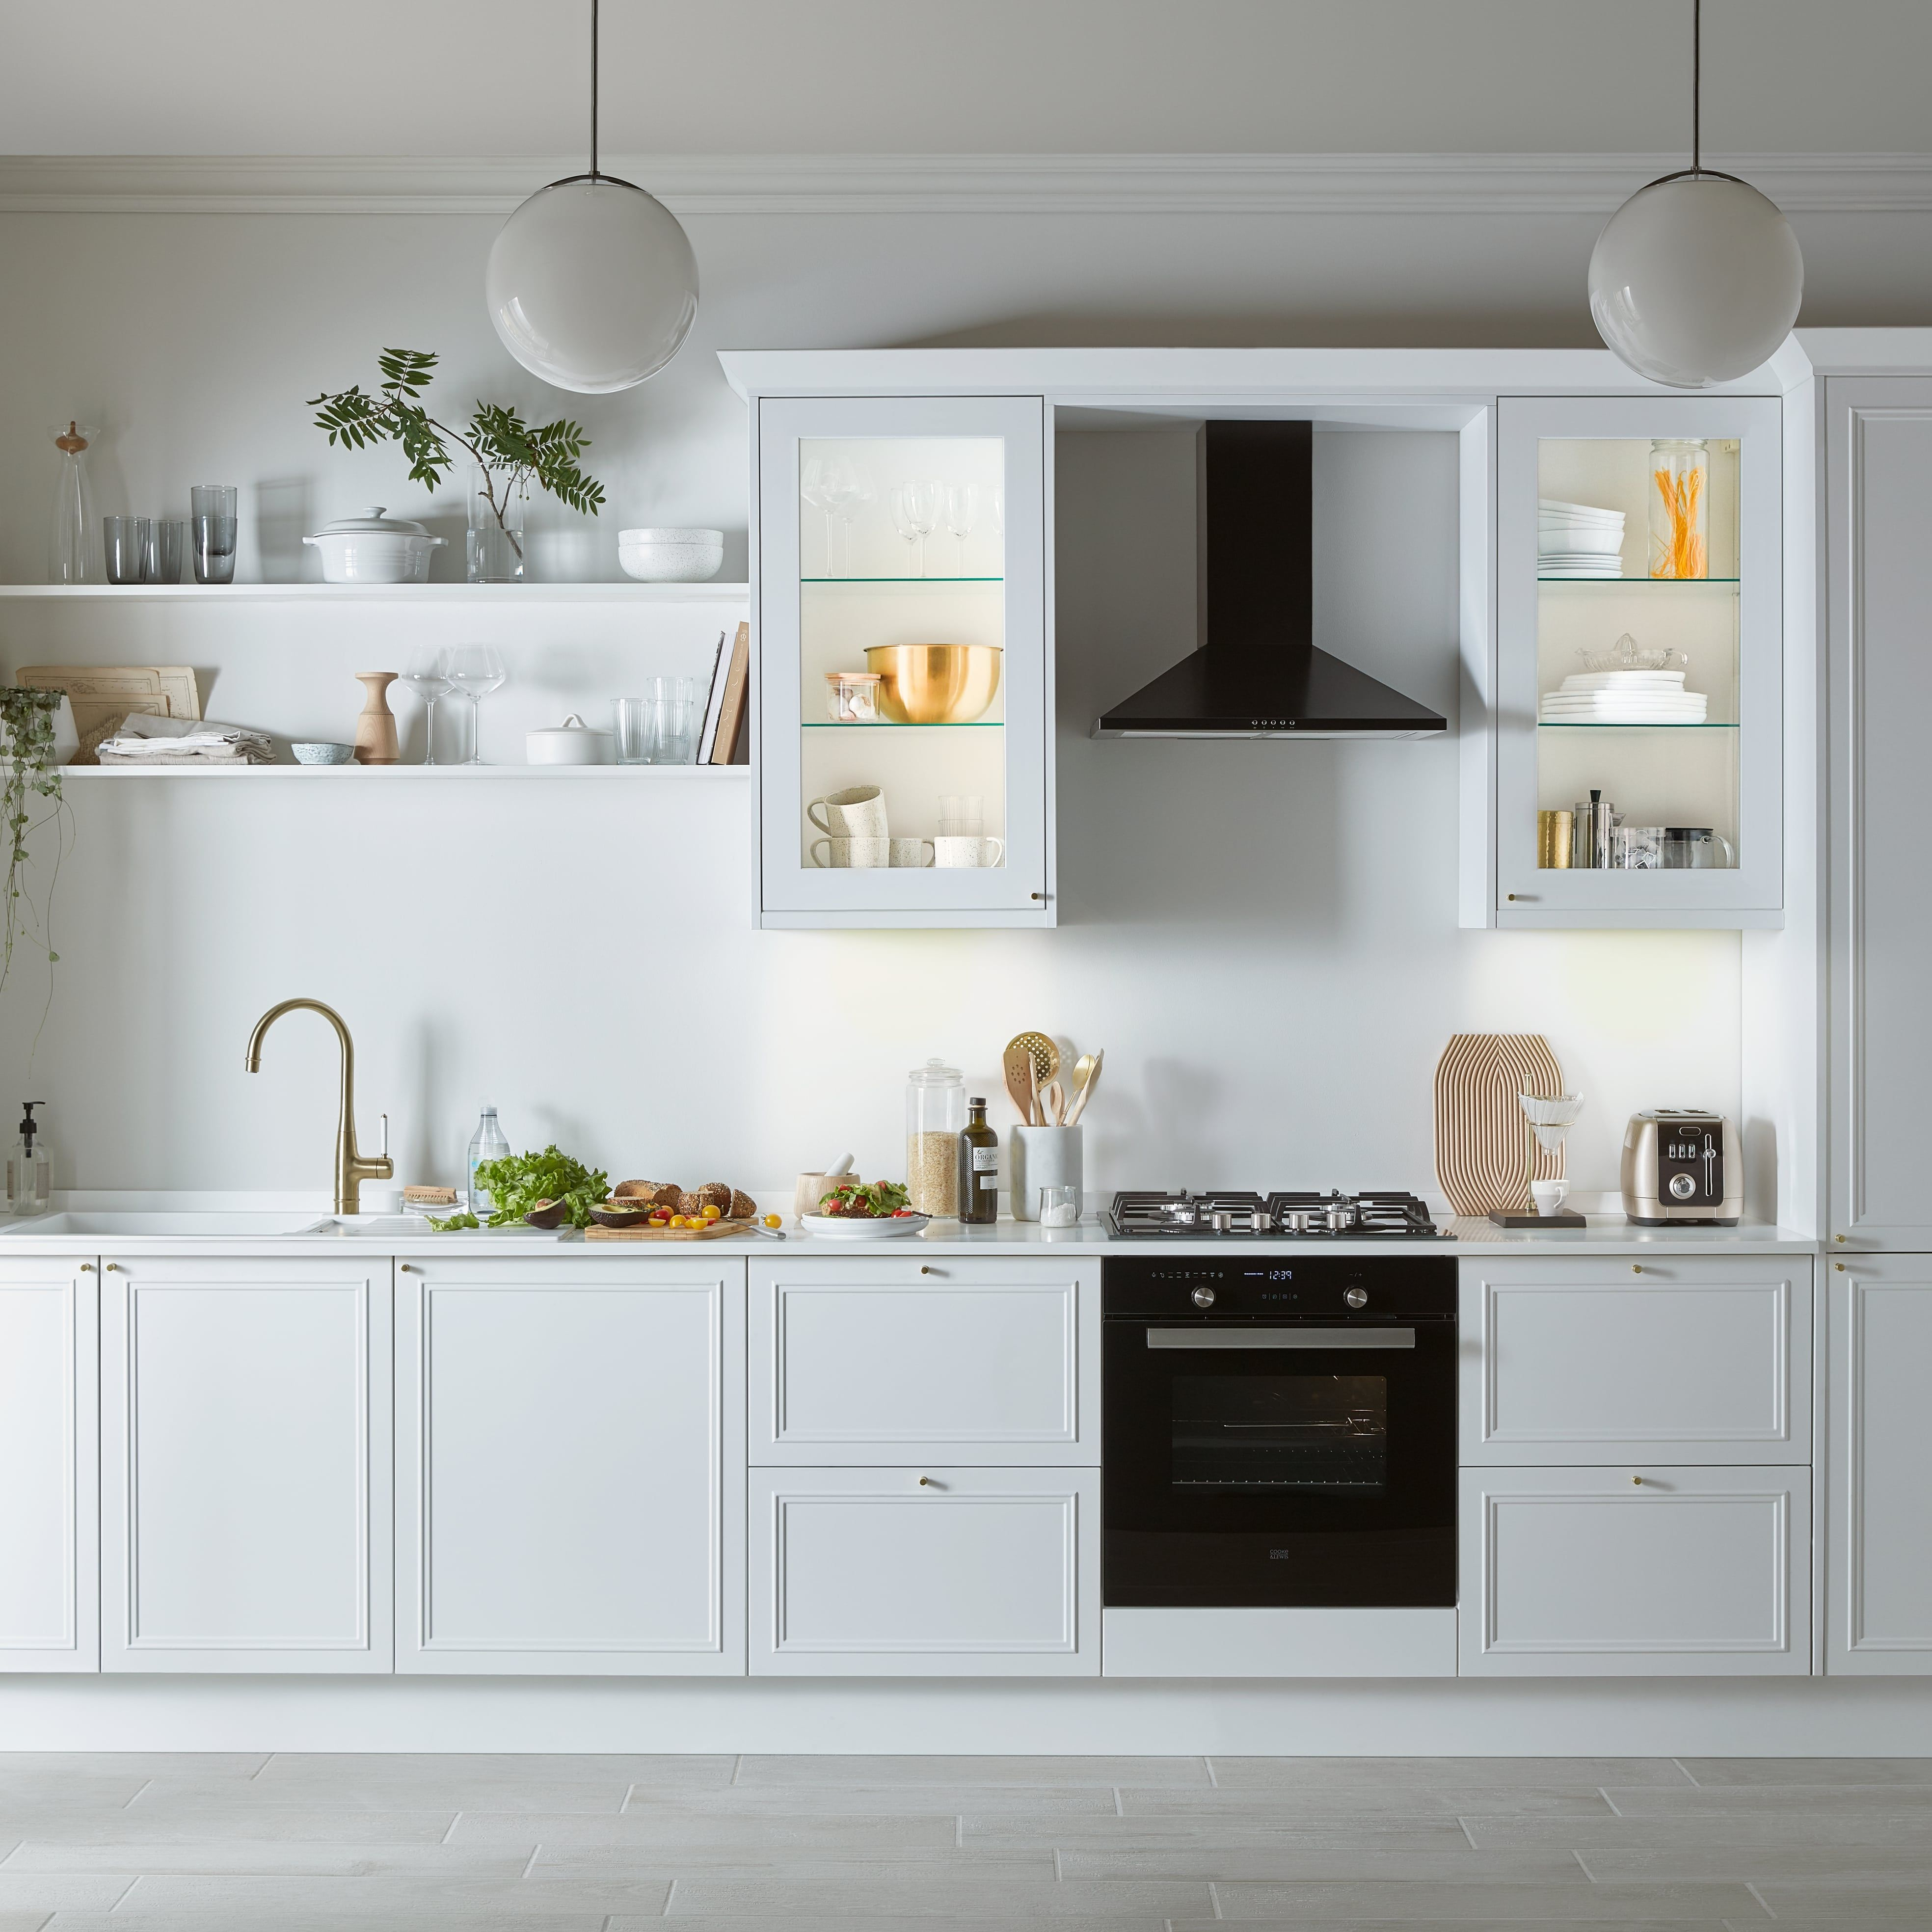 Kitchen trends image by Charlton on Home ideas in